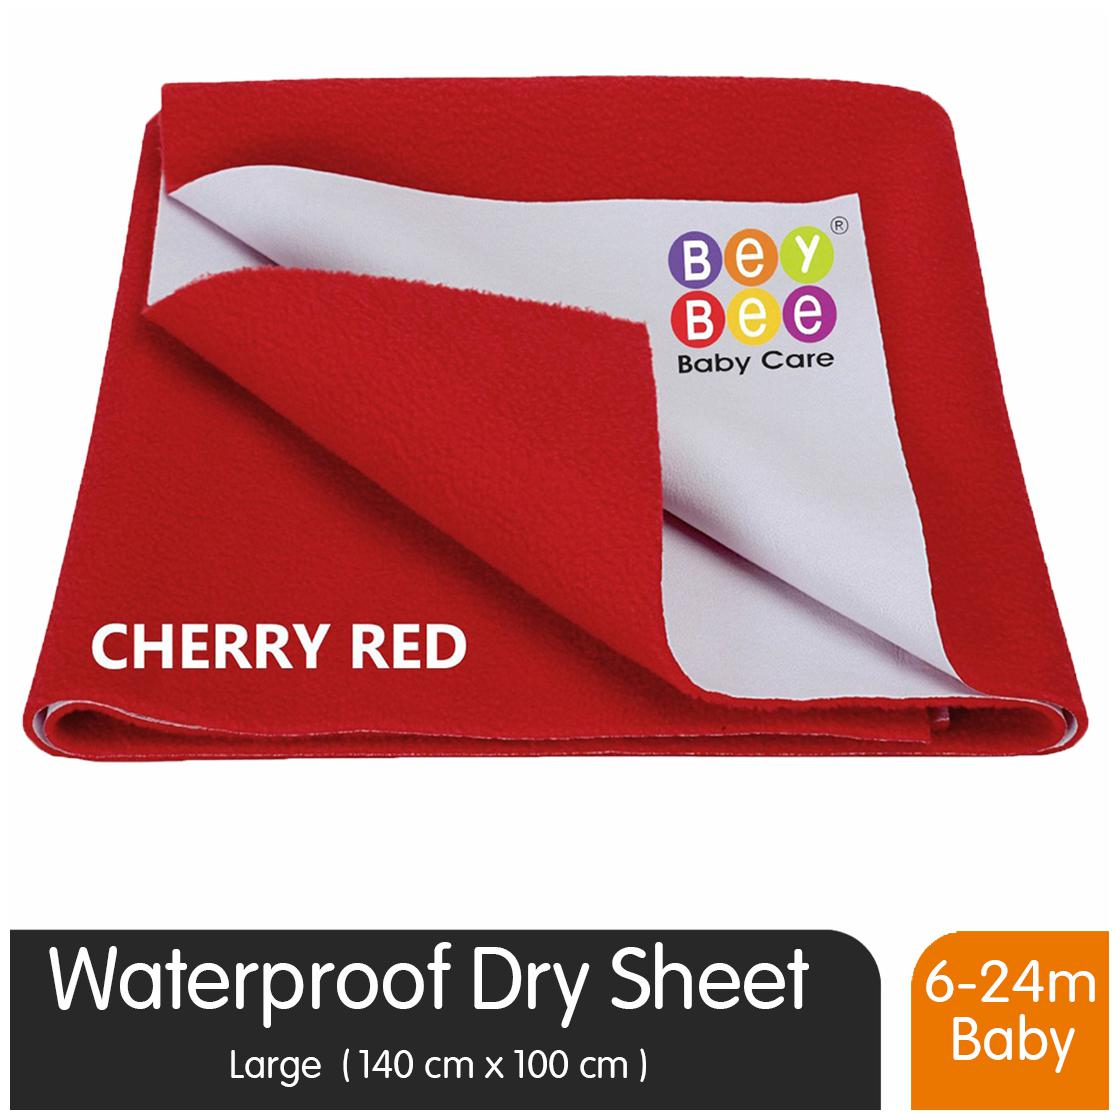 https://assetscdn1.paytm.com/images/catalog/product/F/FA/FASBEY-BEE-QUICBABY11468446C3DD0C/1592972442559_0..jpg